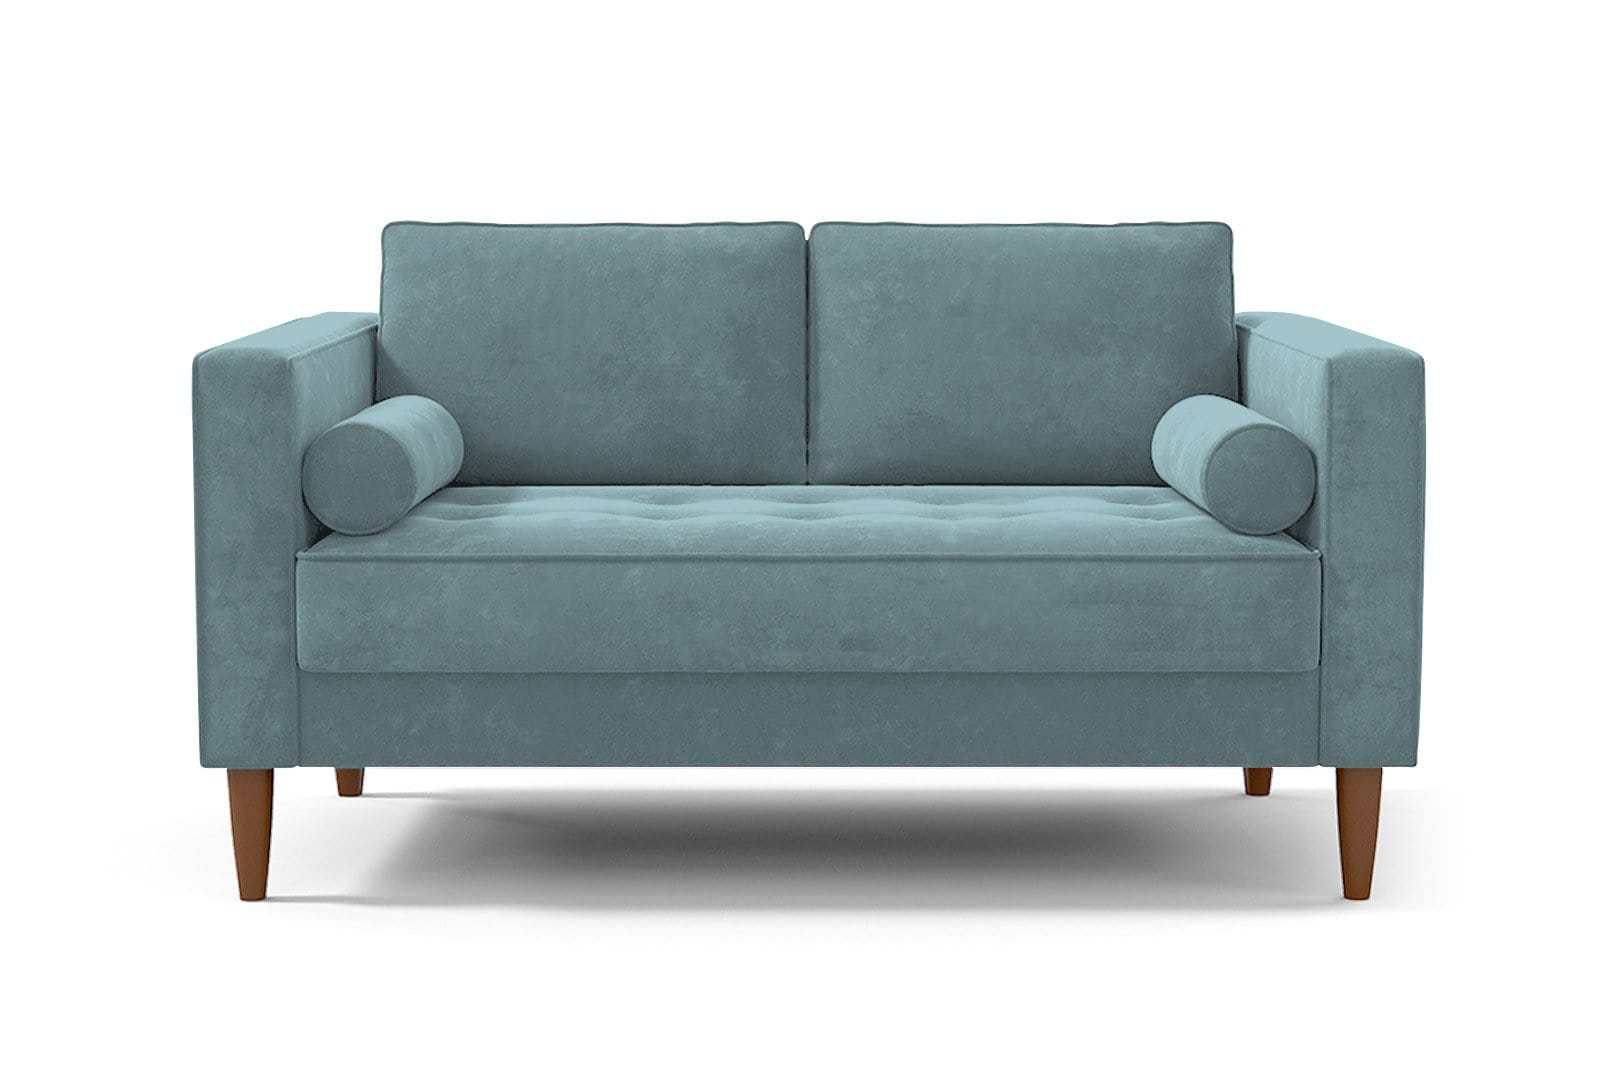 Delilah Loveseat - Blue Velvet - Small Space Modern Couch Made in the USA - Sold by Apt2B